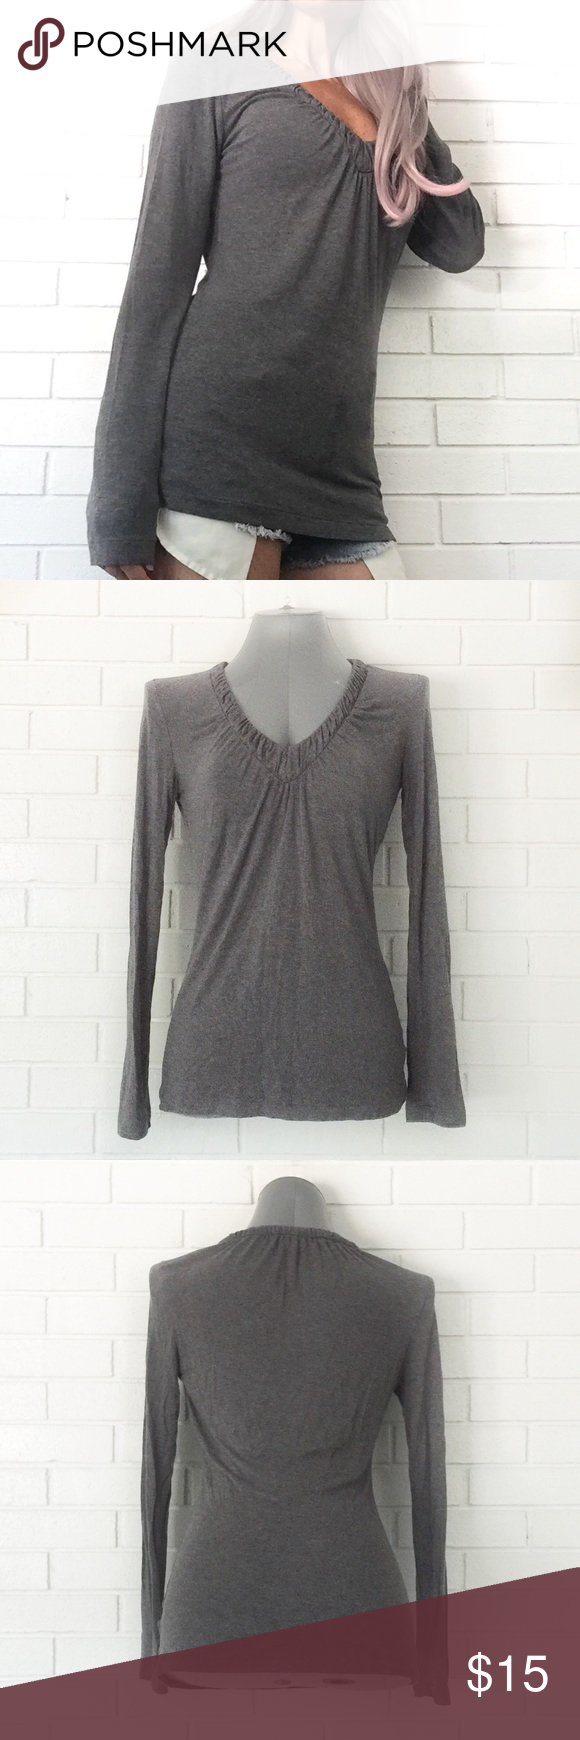 "🔴BOGO FREE🔴Banana Republic Gray V-neck Top ♦️️BOGO FREE SALE: Pick any two items at list price and receive the lesser value item for free. Please ask me to create your bundle ONLY when you are ready to purchase♦️  •Very good condition-no flaws •Ruched v-neck •Long sleeves •Slim fit •M  •Waist: "" (laying flat) •Length: ""  •NO TRADE/HOLD  •YES BUNDLES   •PLEASE ASK QUESTIONS & READ DESCRIPTIONS. Measurements and sizing recommendations are for guidance purposes only. I cannot guarantee fit❗…"